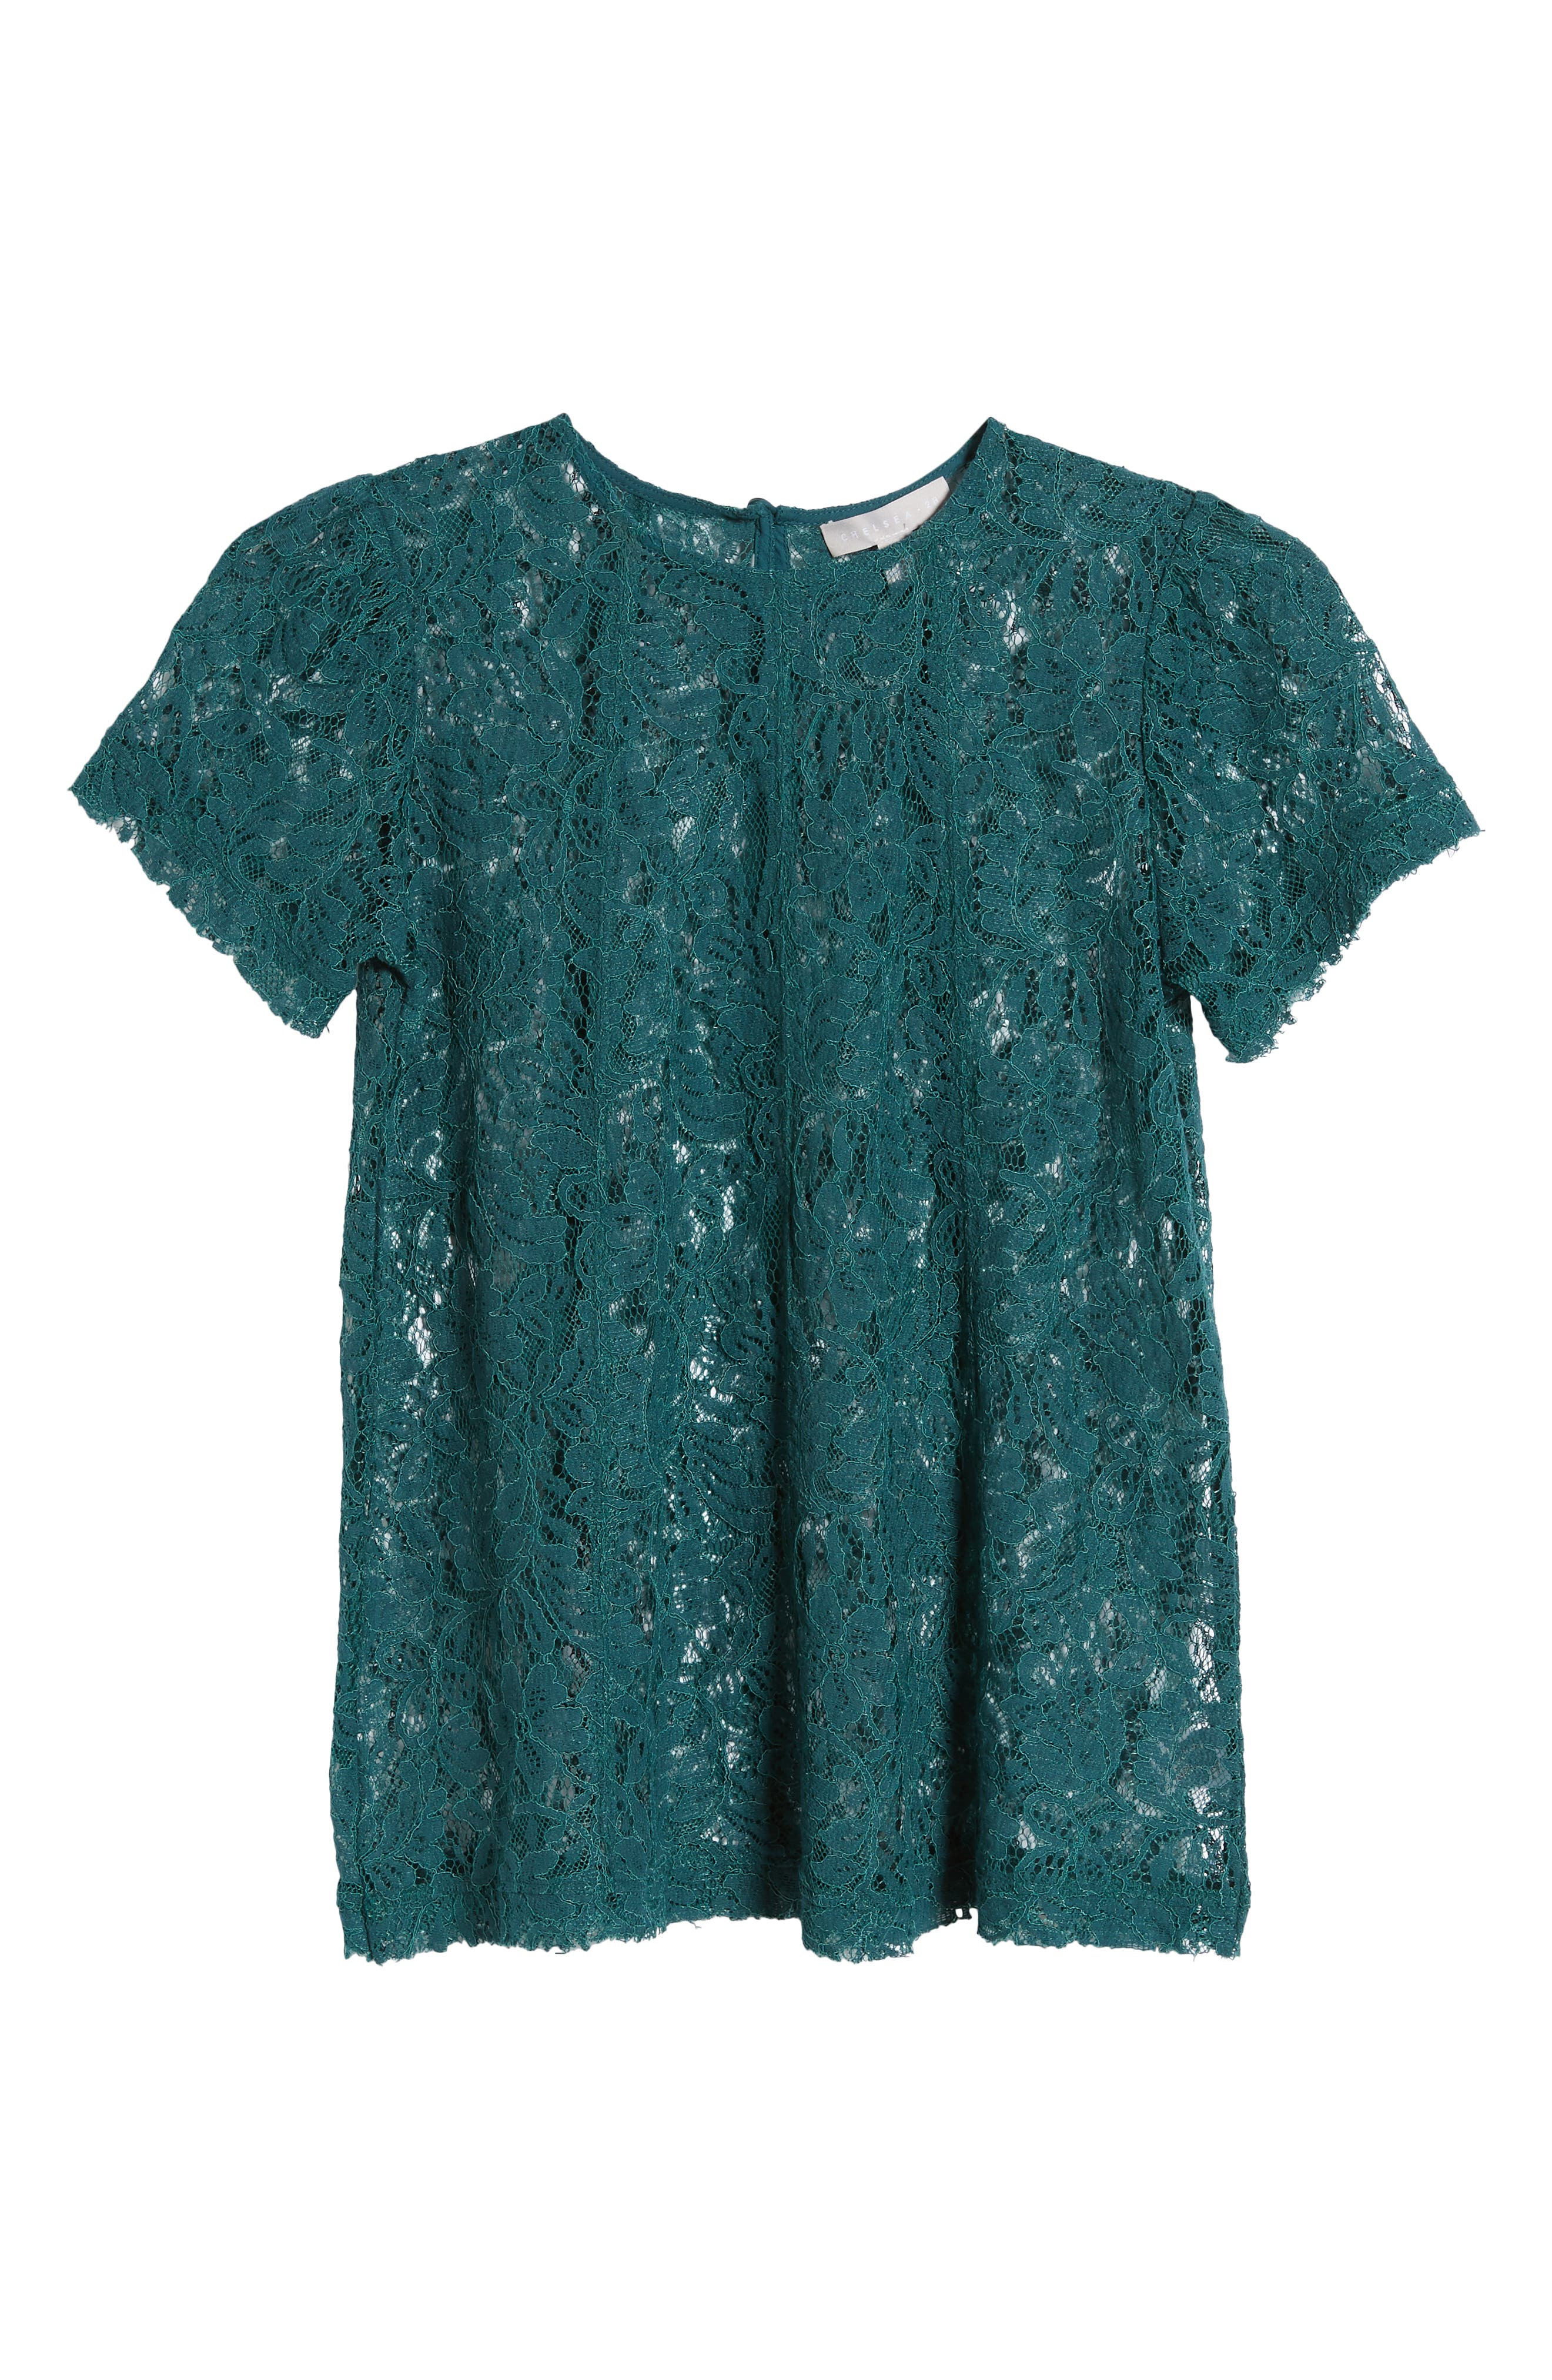 CHELSEA28, Lace Top, Alternate thumbnail 6, color, TEAL BALSAM